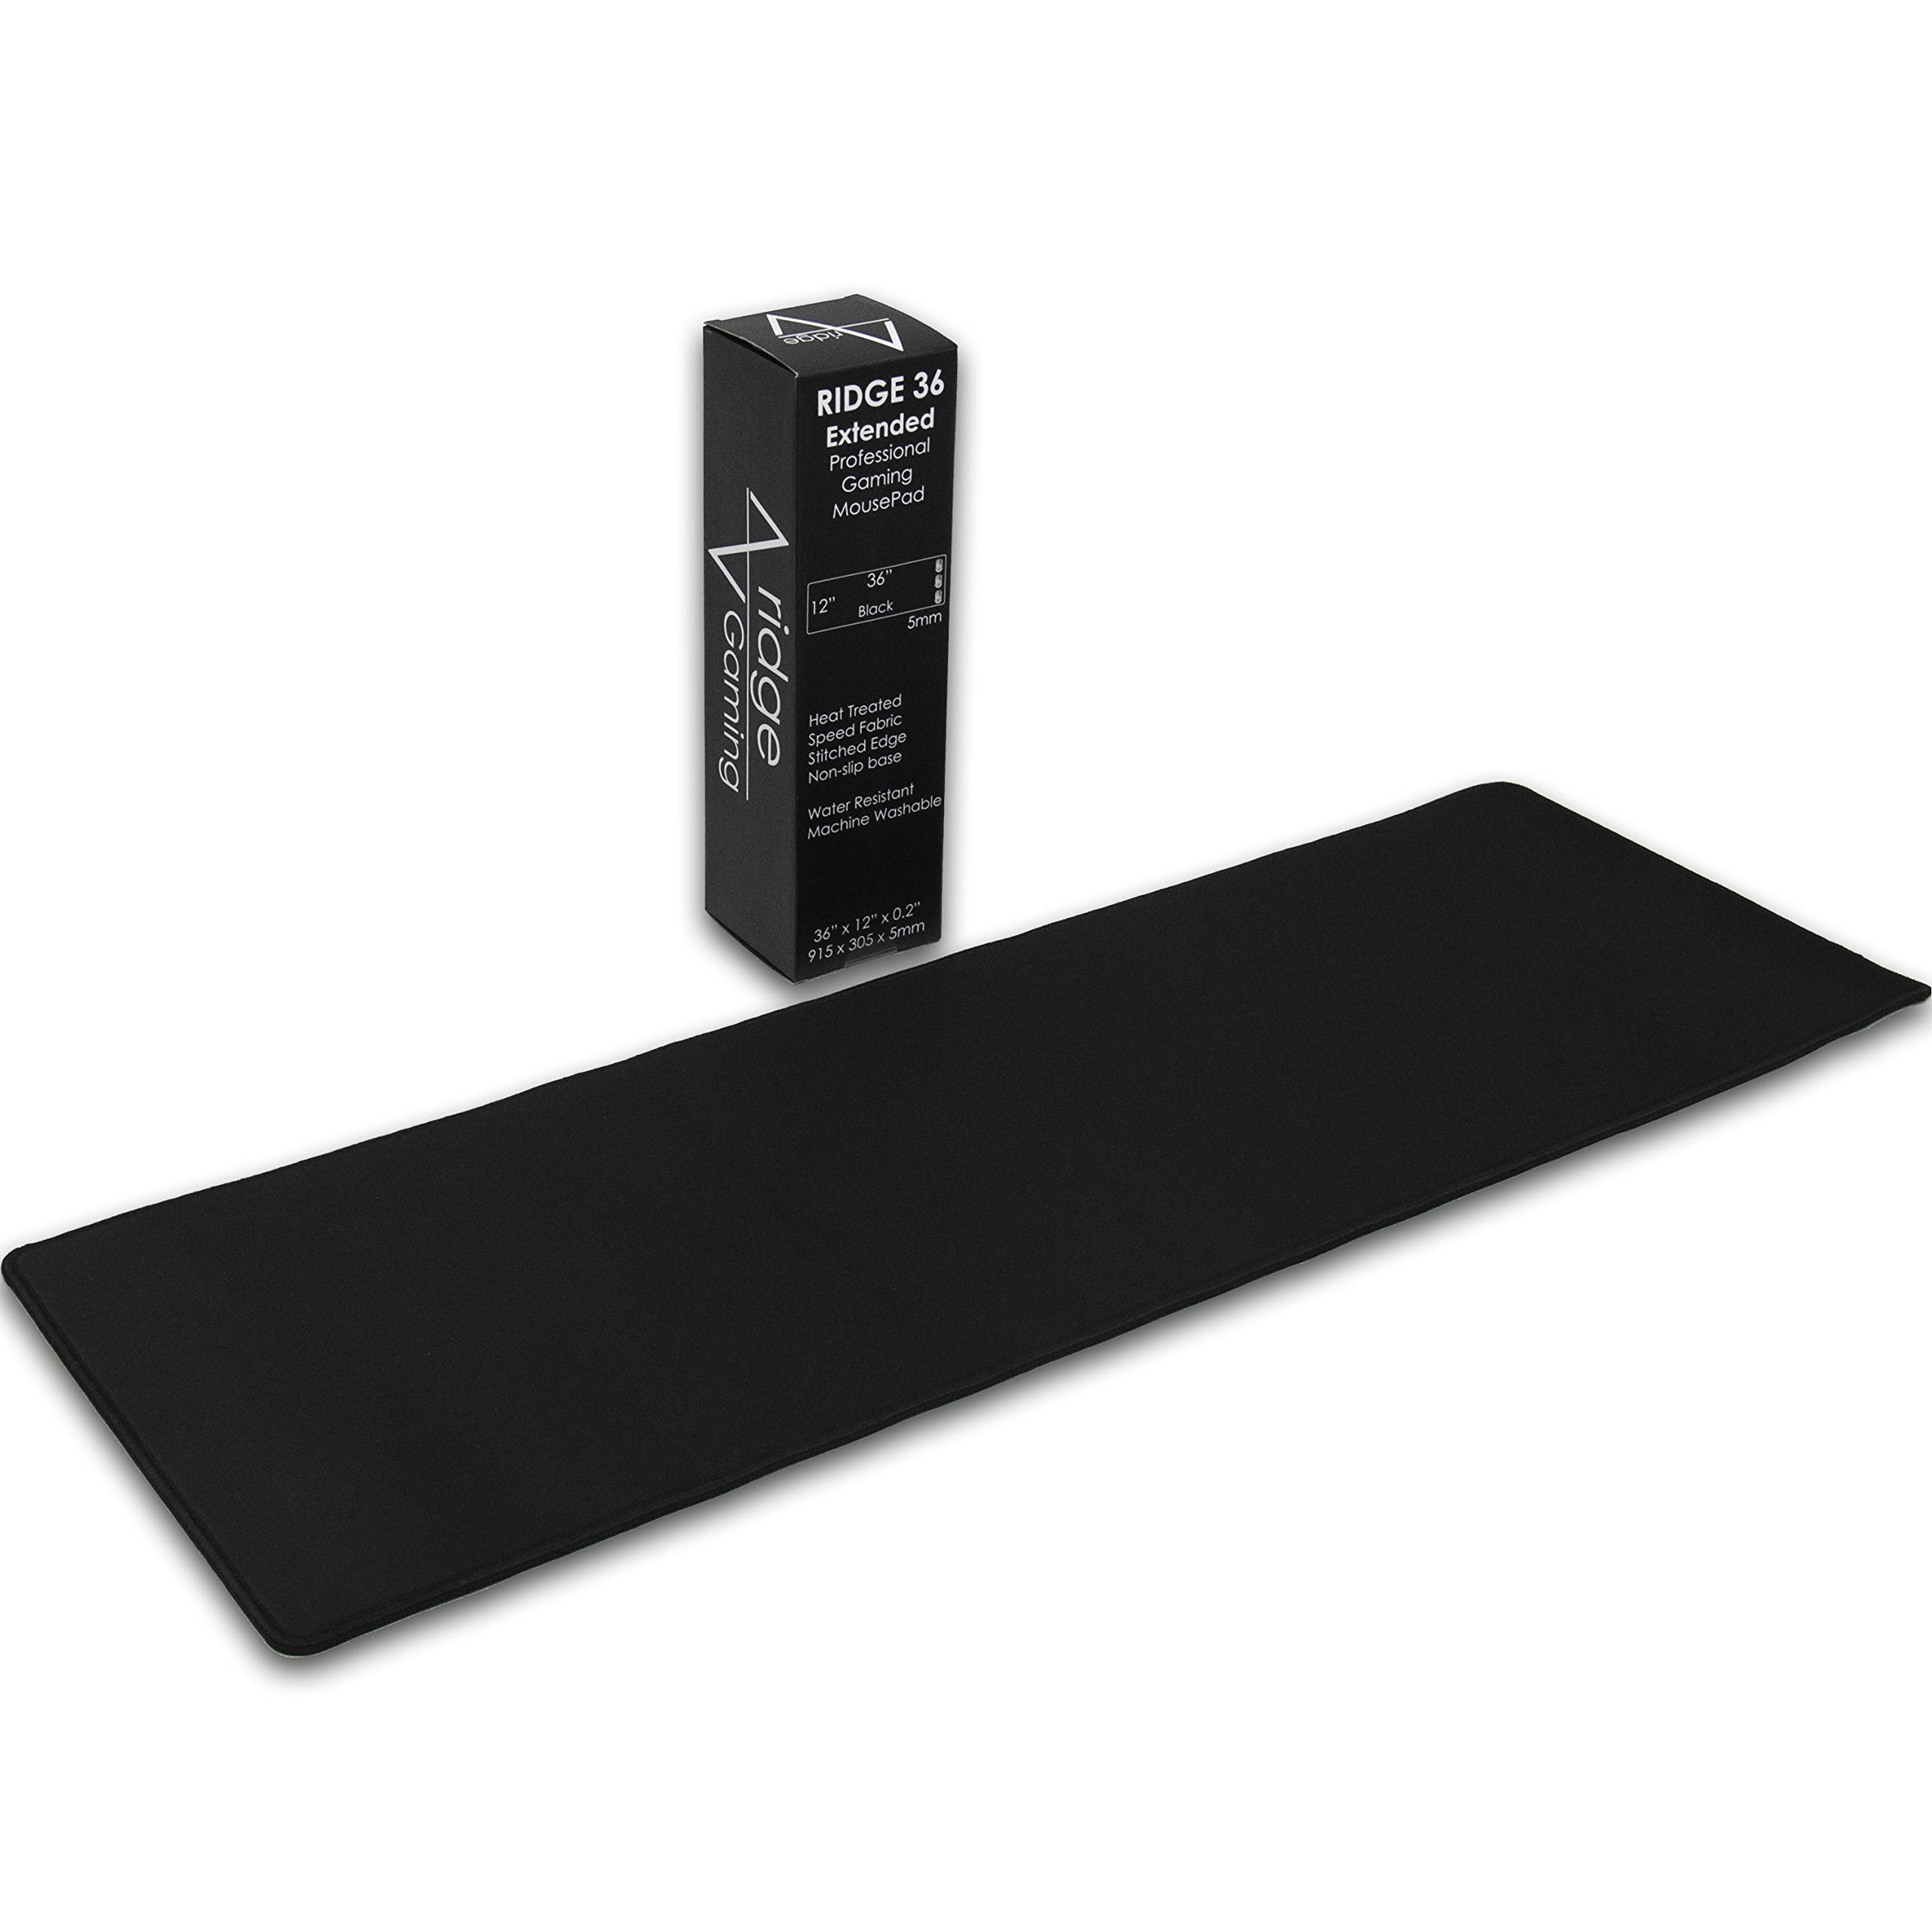 Pro Gaming Mouse Pad (5mm) | Ridge Extended 36 inch | 36x12x0.20'' Extra Thick | Black/Black | Dense-Weave Speed Poly, Superior Control | Stitched-Edge, Water resistant, Washable, Giant, Large Desk Mat